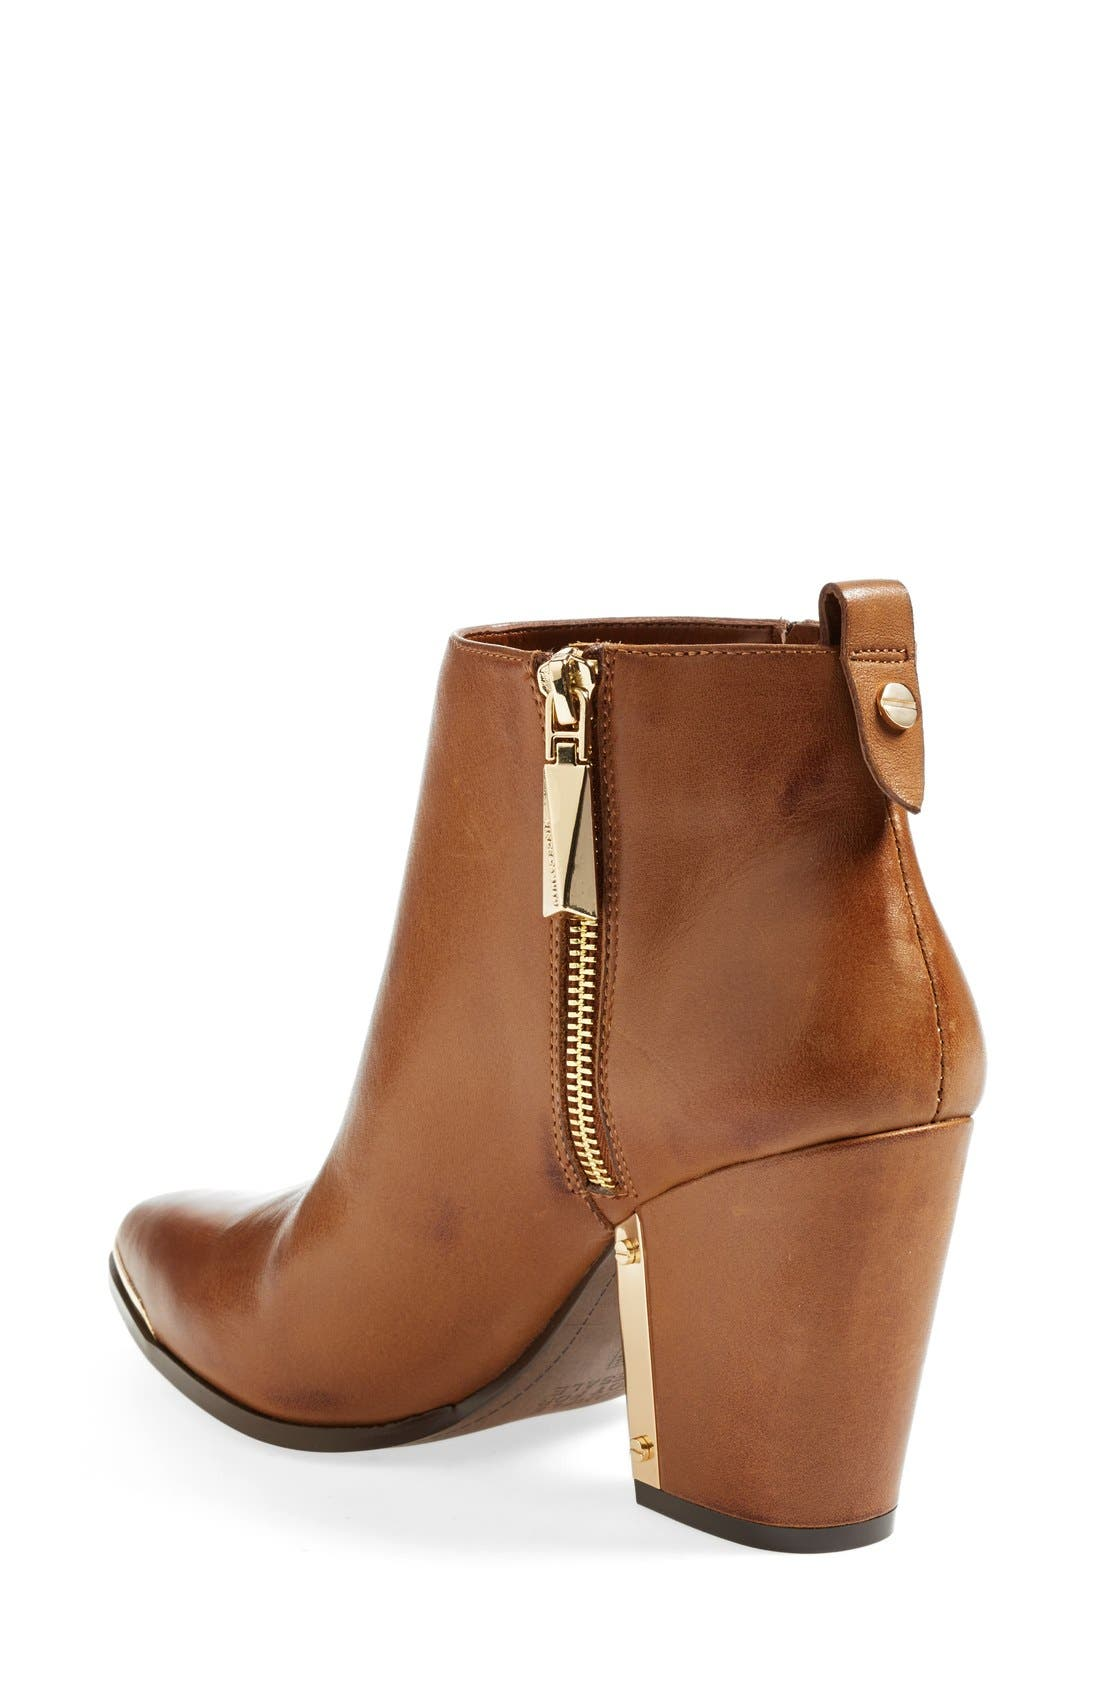 Alternate Image 2  - Vince Camuto 'Amori' Pointy Toe Leather Bootie (Women)